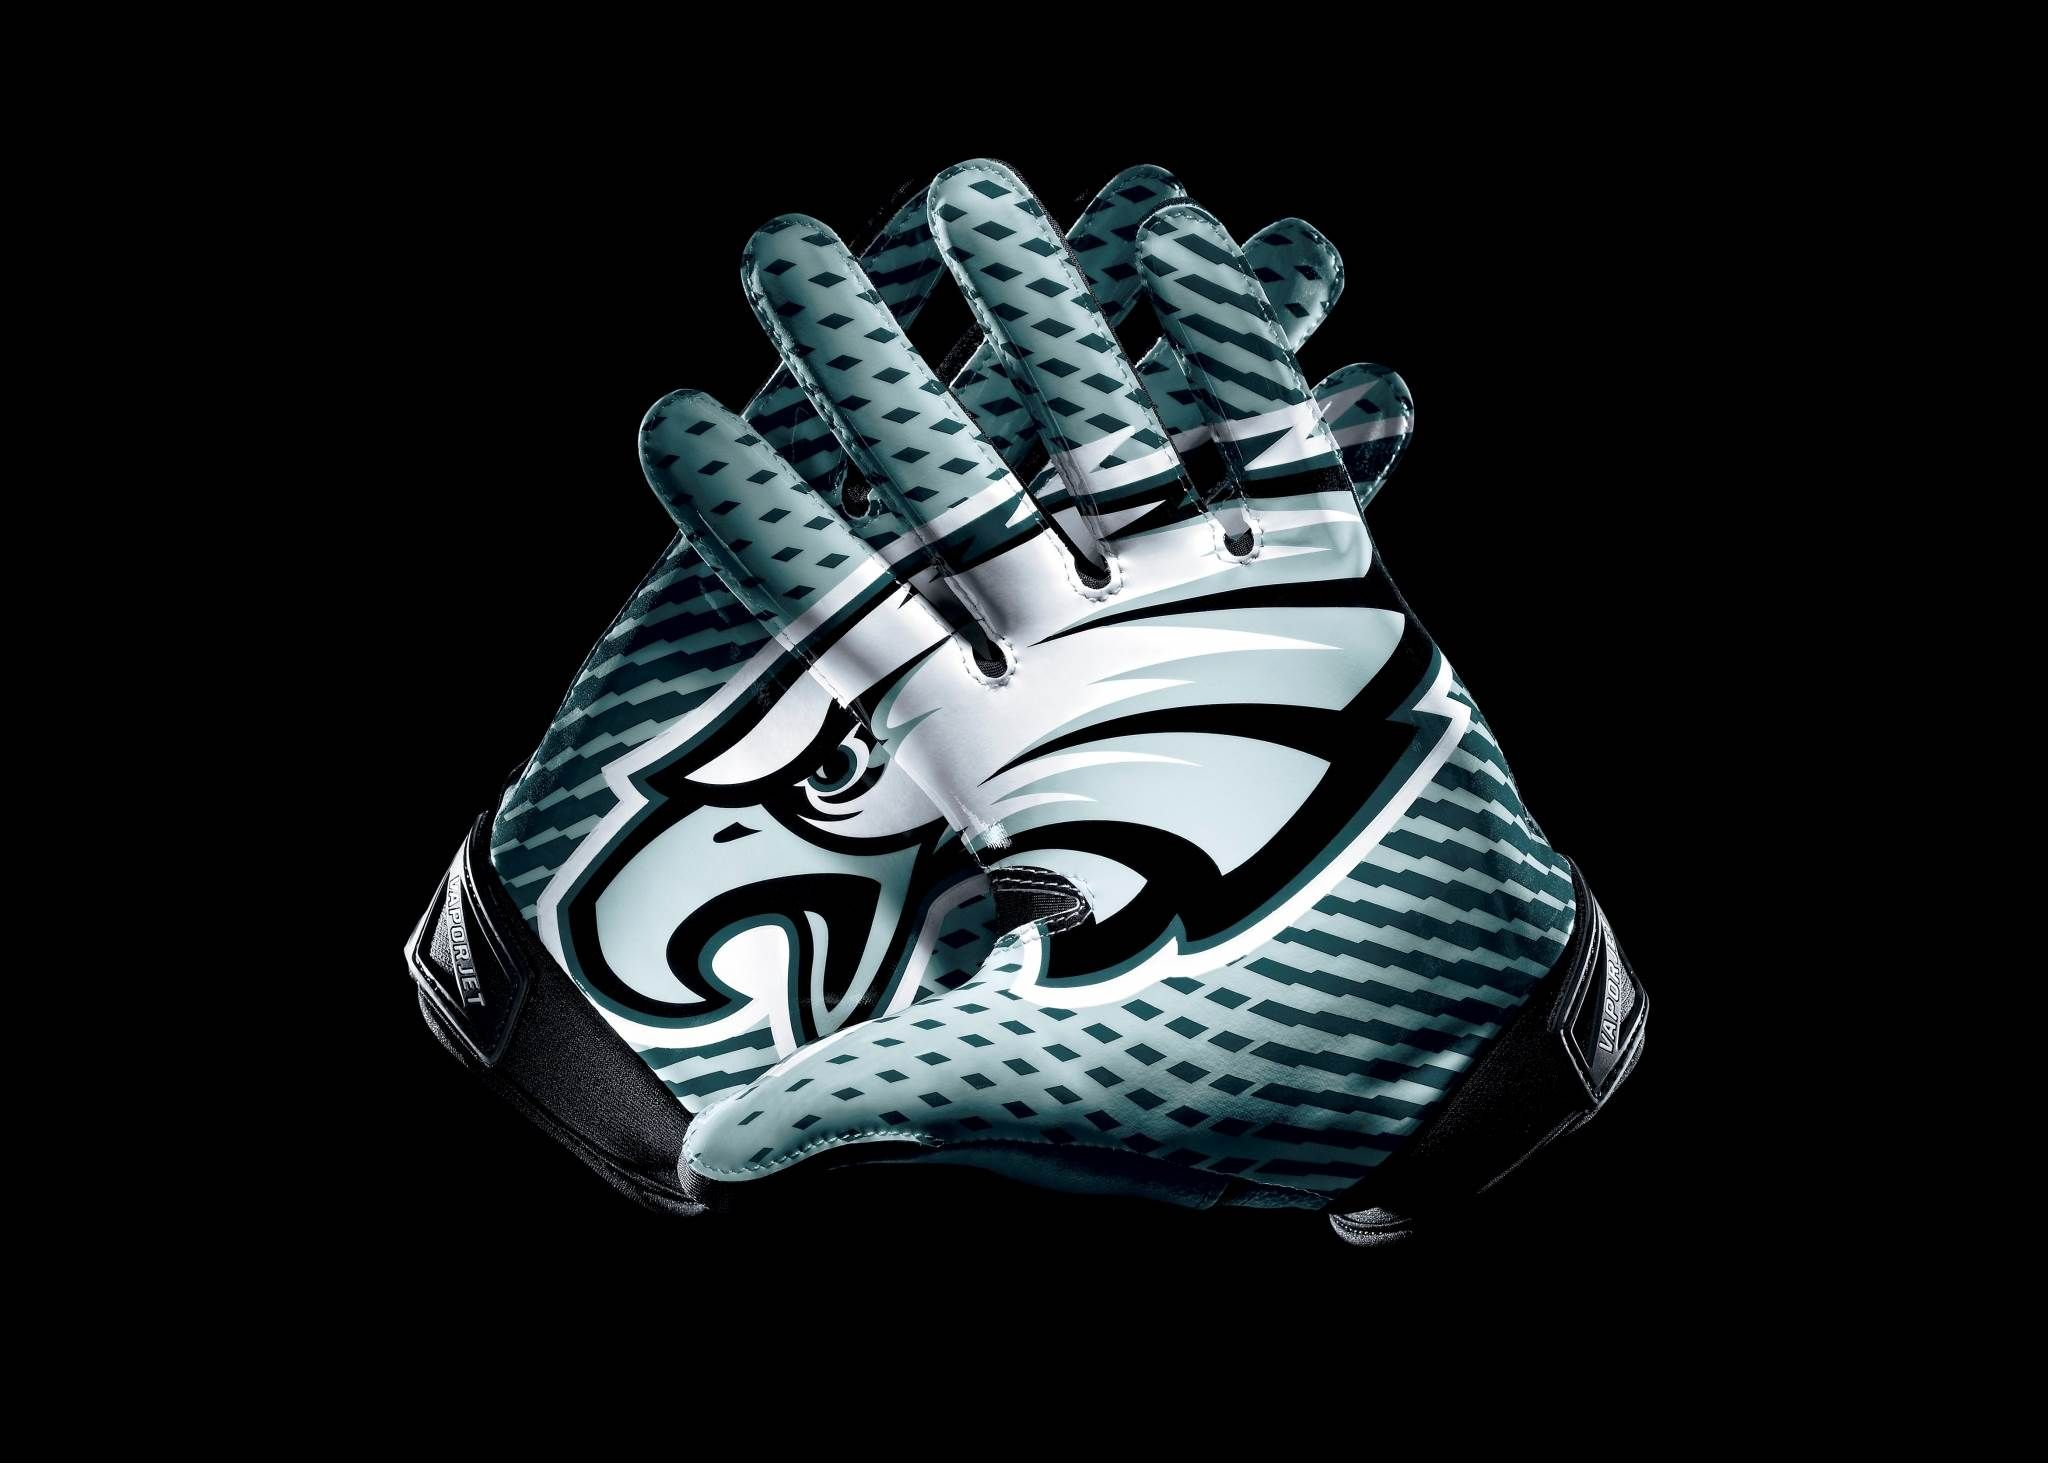 Philadelphia Eagles Screensaver Wallpapers High Definition 800x500 Free